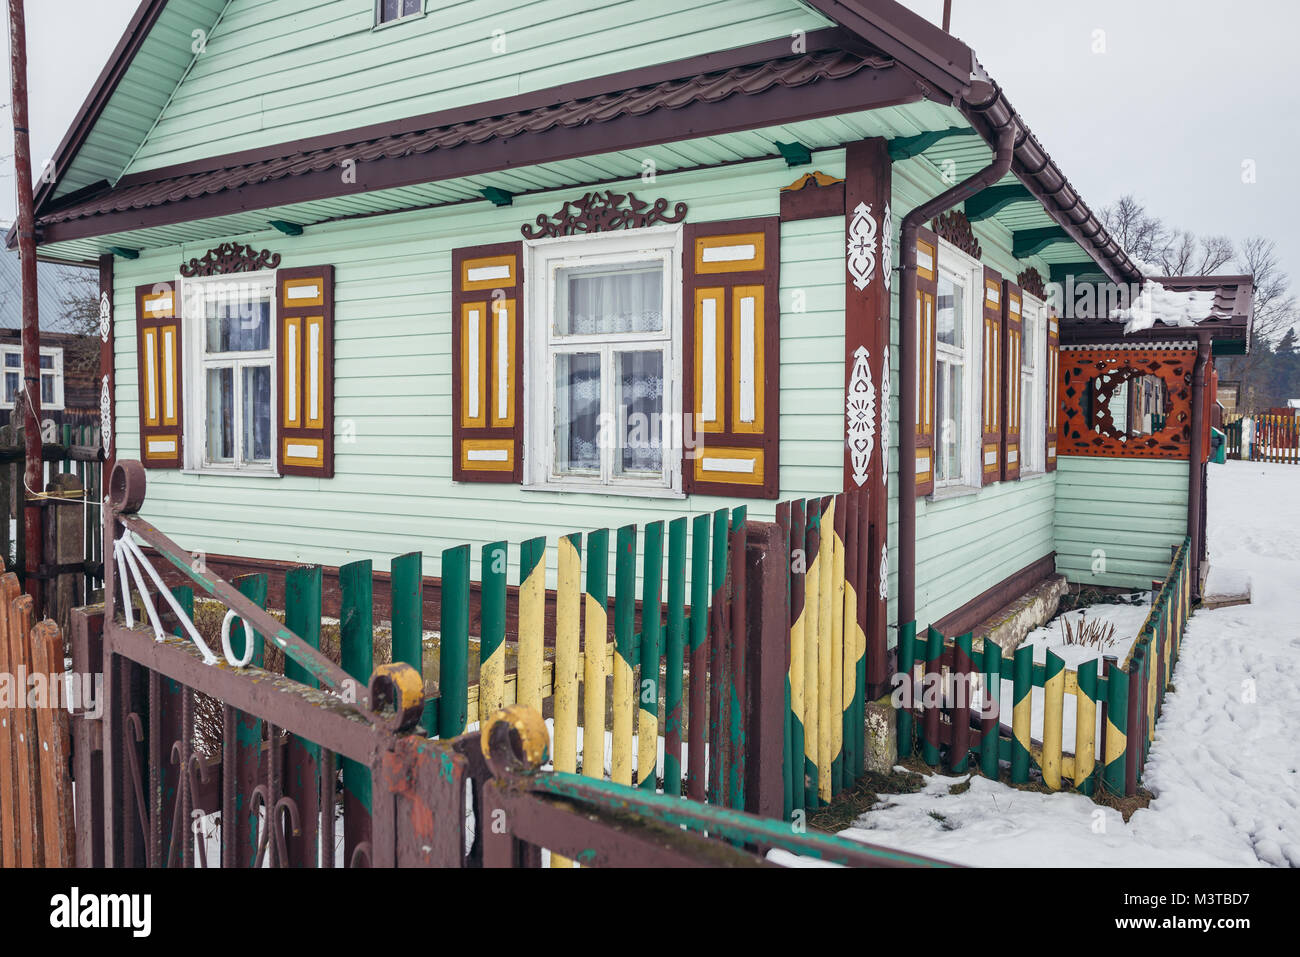 Decorated house in Soce village on so called The Land of Open Shutters trail, famous for traditional architecture - Stock Image